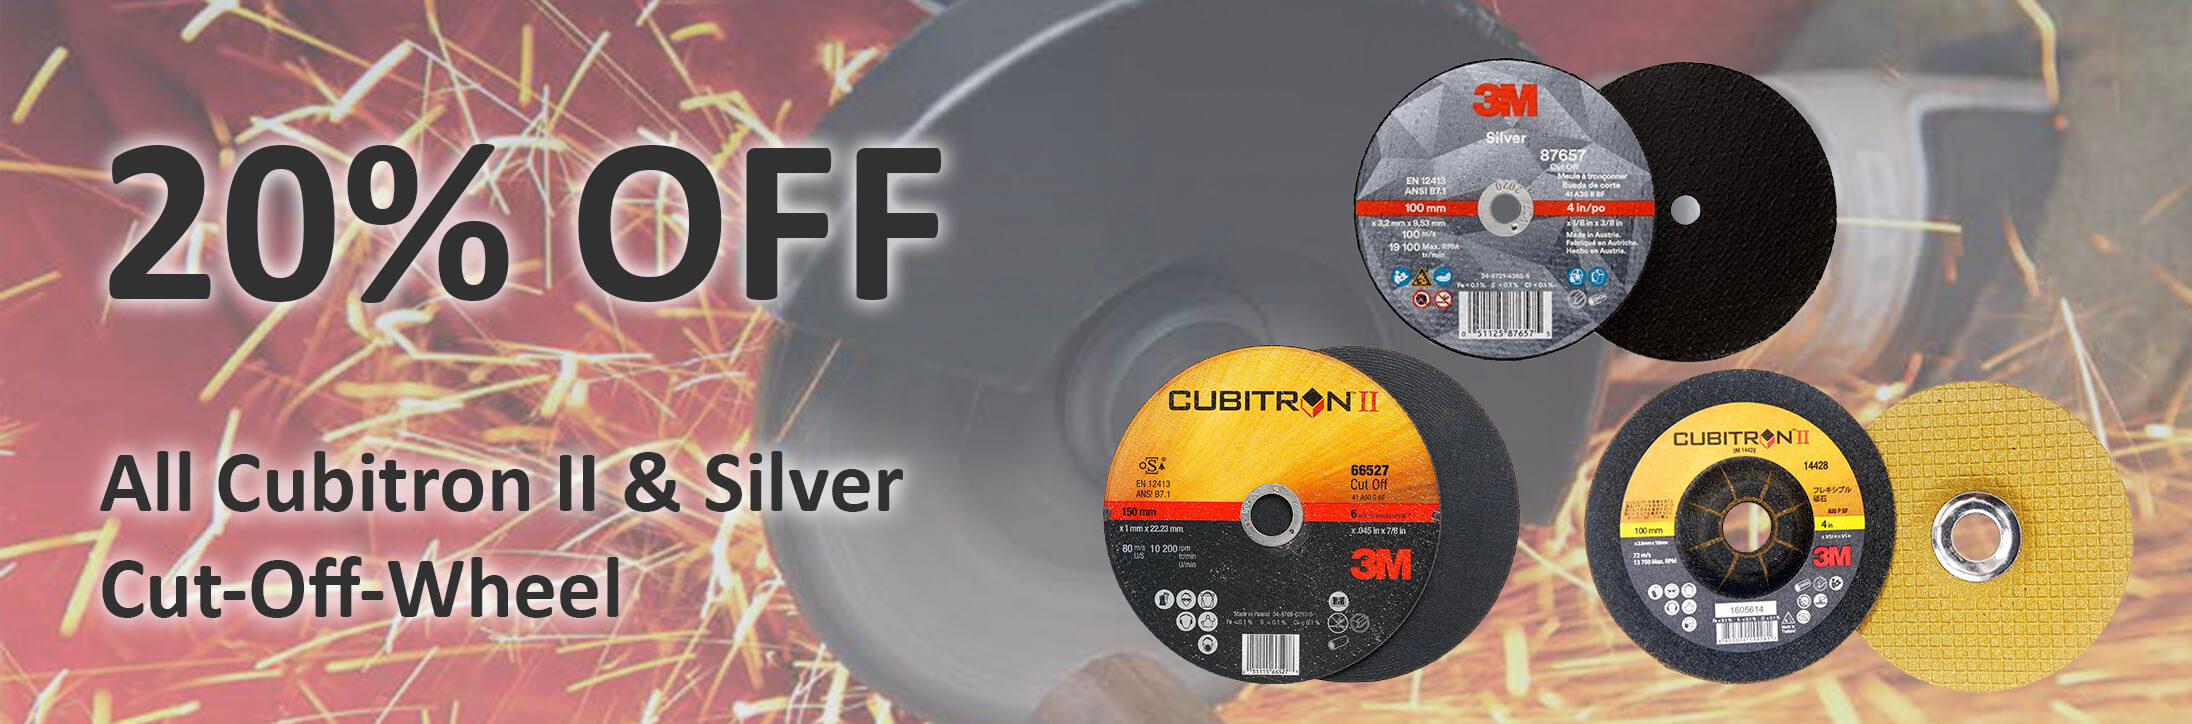 20% discount on 3M Cubitron II and Silver Cut-off Wheel